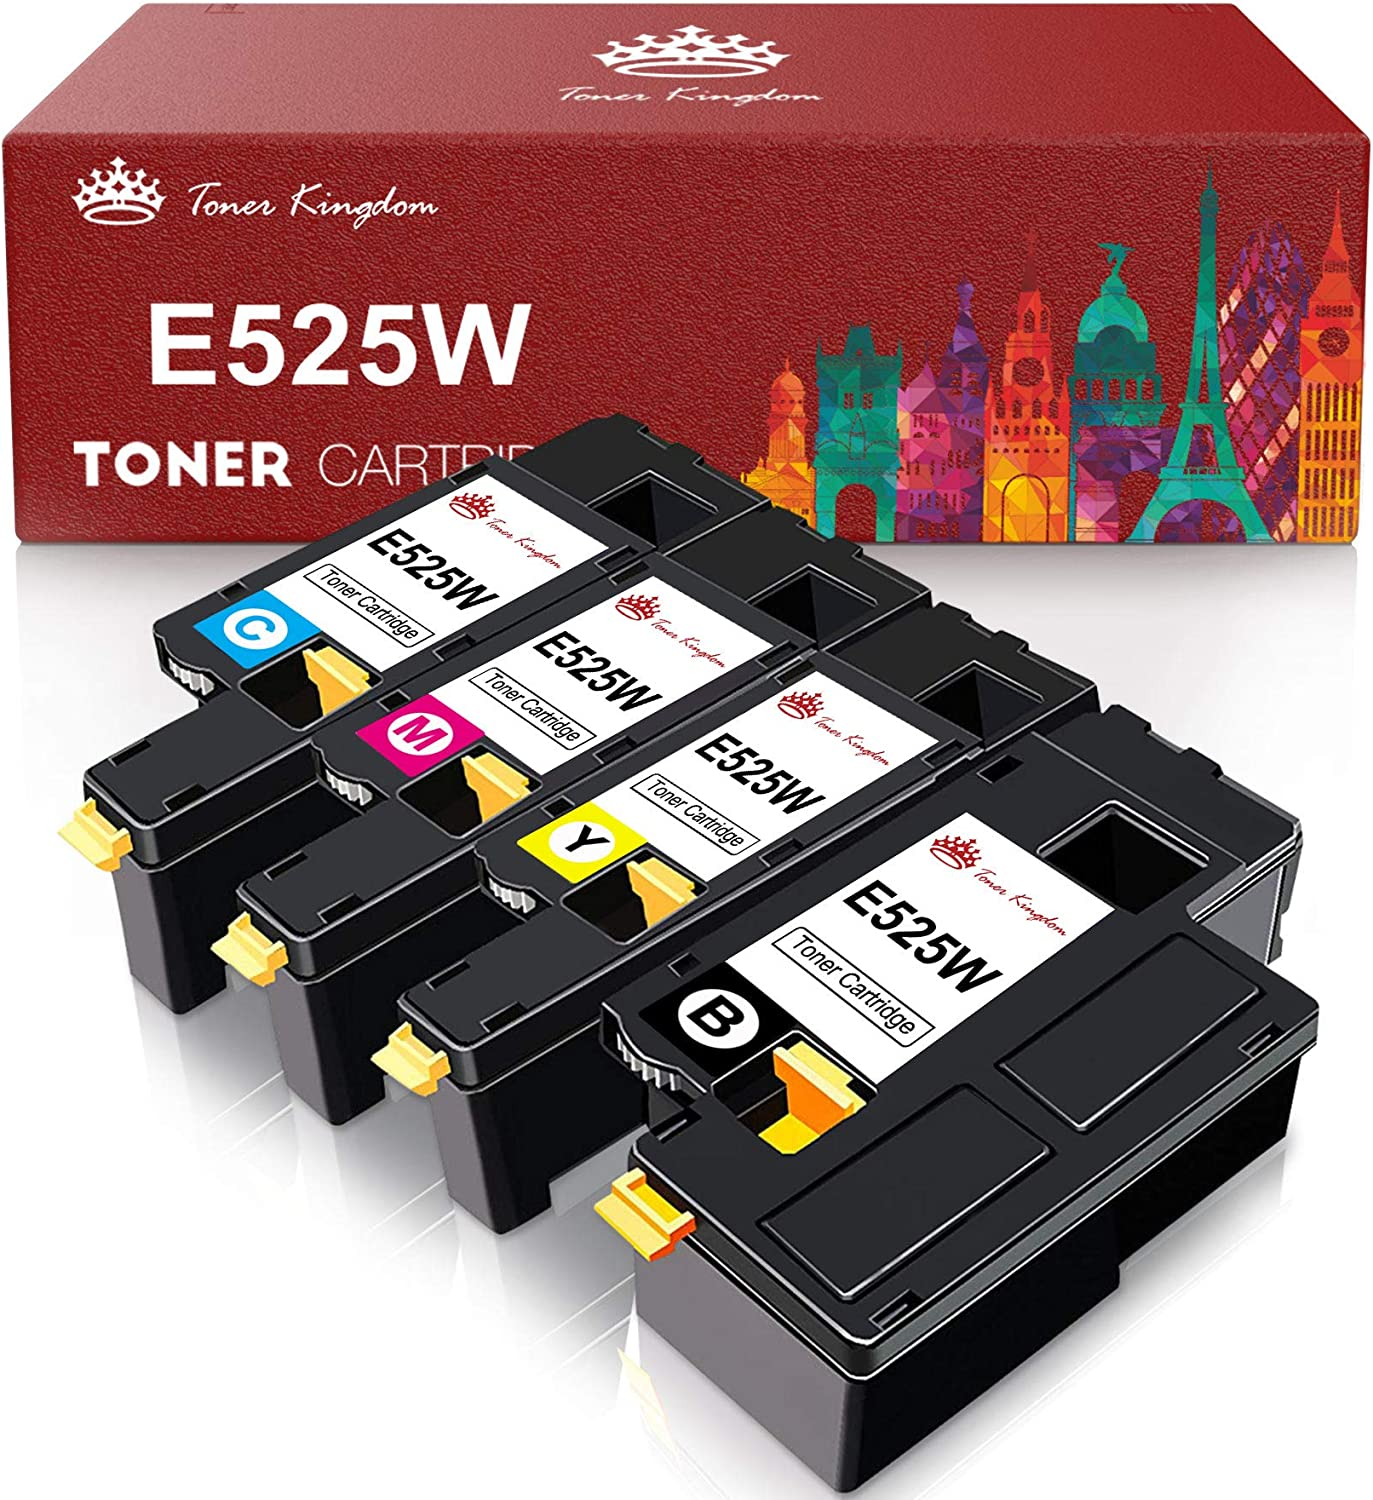 Toner Kingdom Compatible Toner Cartridge Replacement for Dell E525W E525 525w to use with E525w Wireless Color Printer for 593-BBJX 593-BBJU 593-BBJV 593-BBJW (Black, Cyan, Magenta, Yellow, 4-Pack)